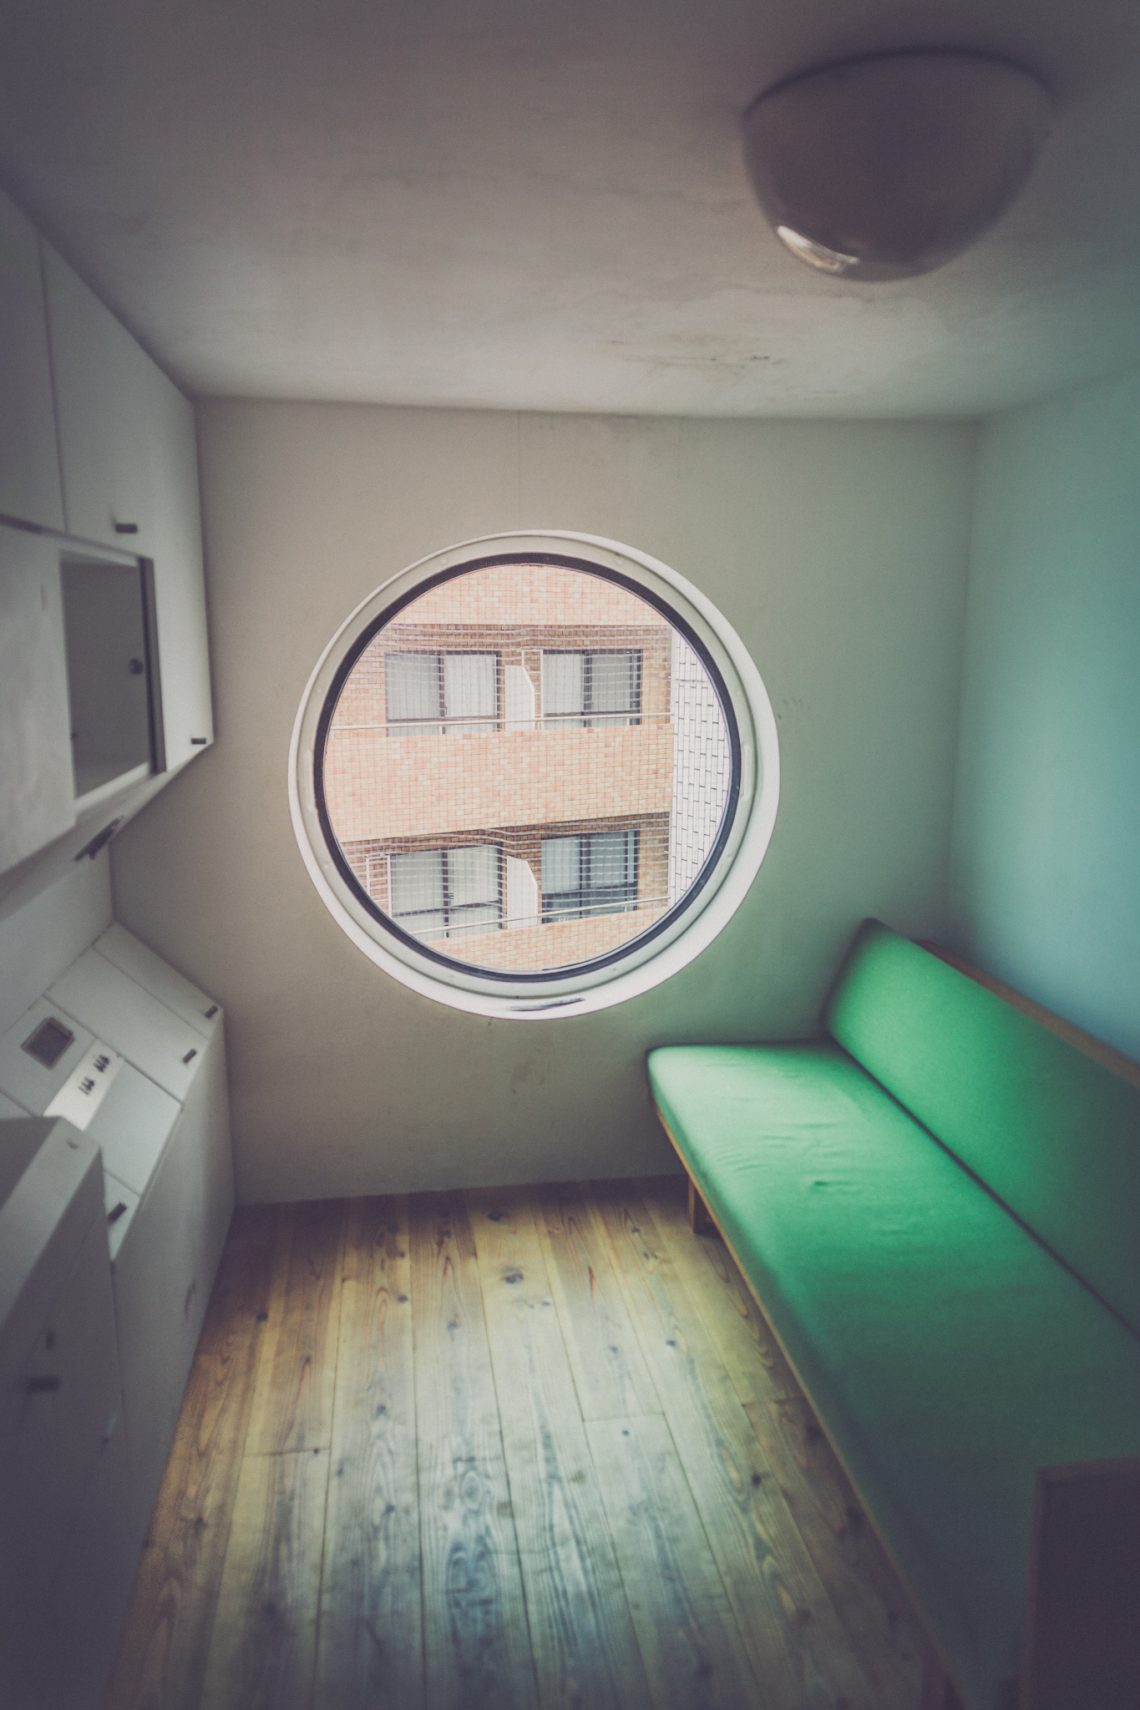 The Nakagin Capsule Tower // Japan